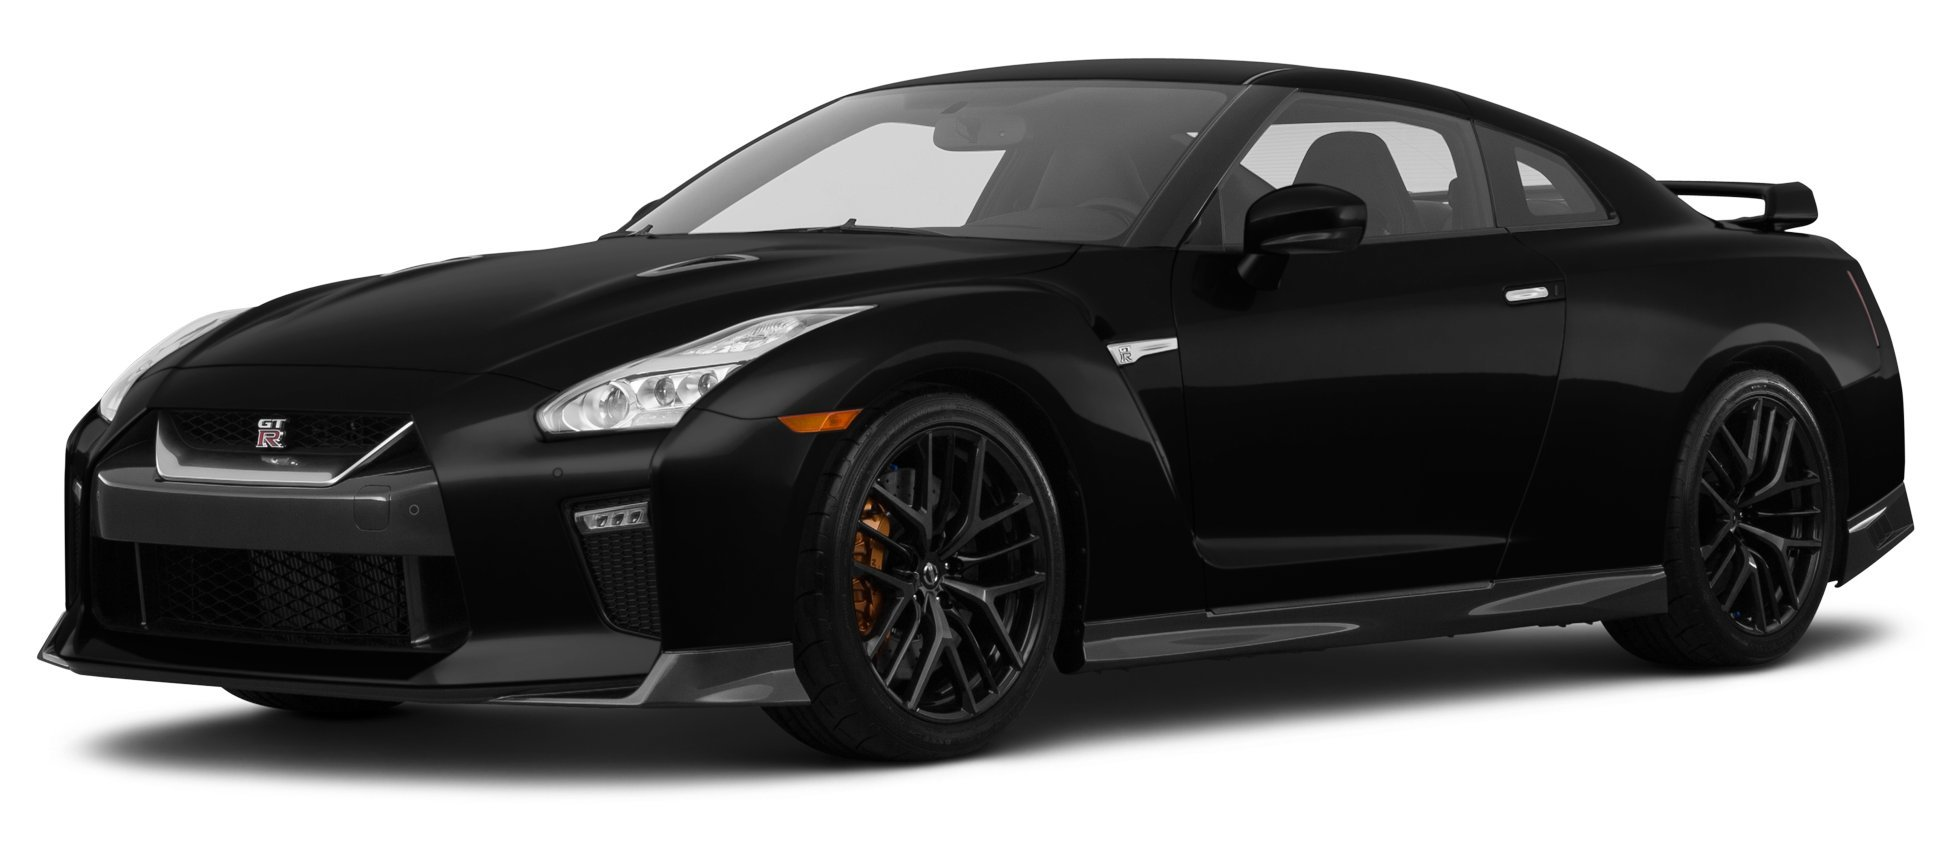 Amazon.com: 2017 Nissan GT-R Reviews, Images, and Specs ...